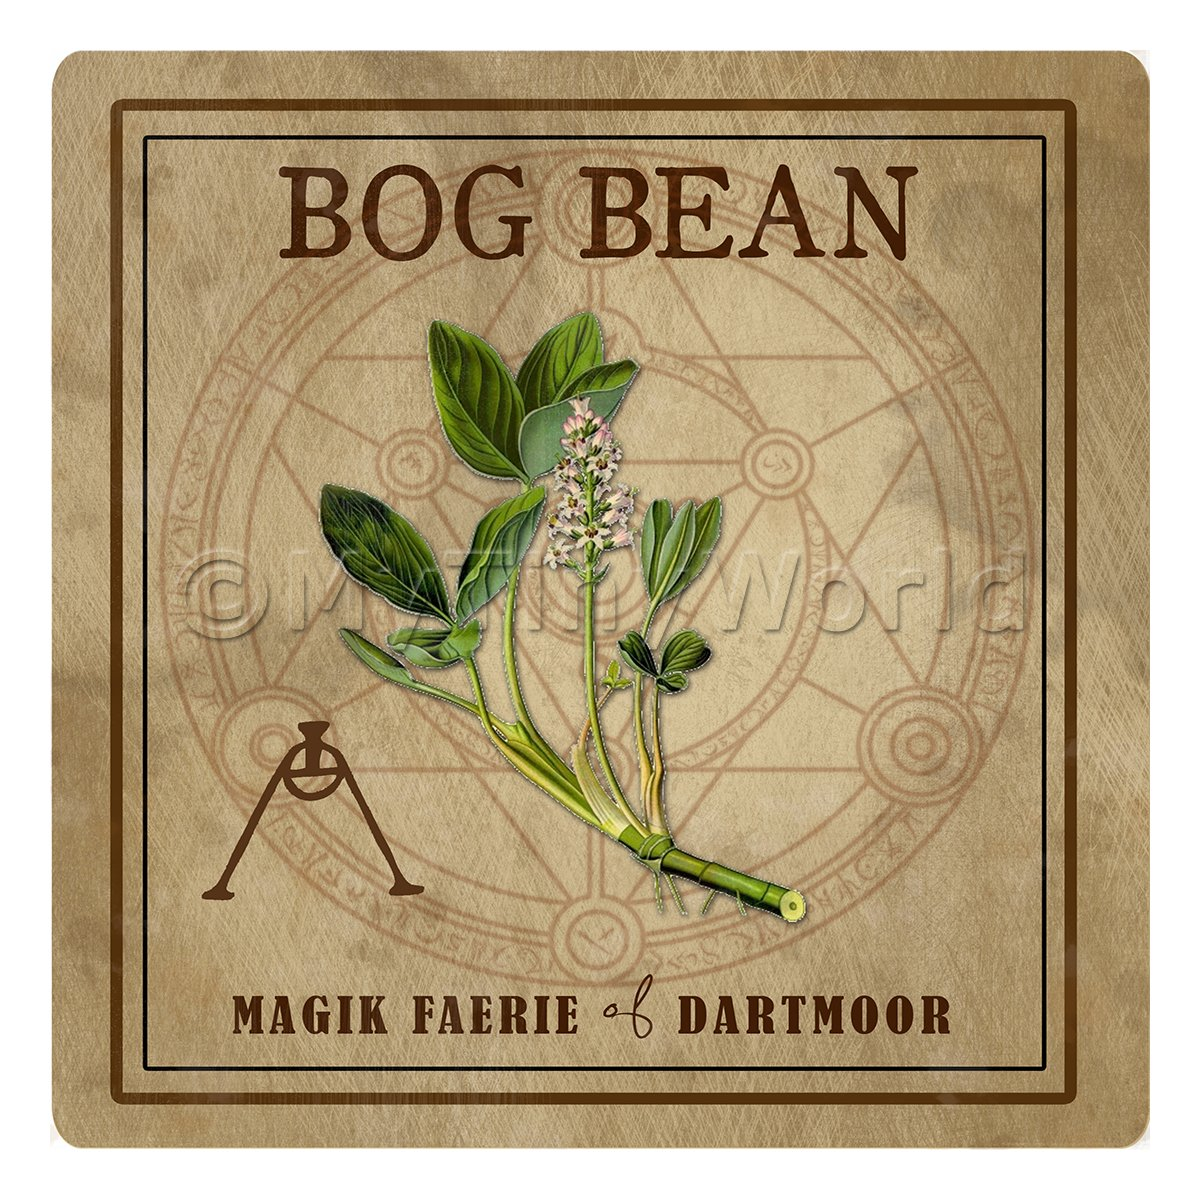 Dolls House Herbalist/Apothecary Square Bogbean Herb Label